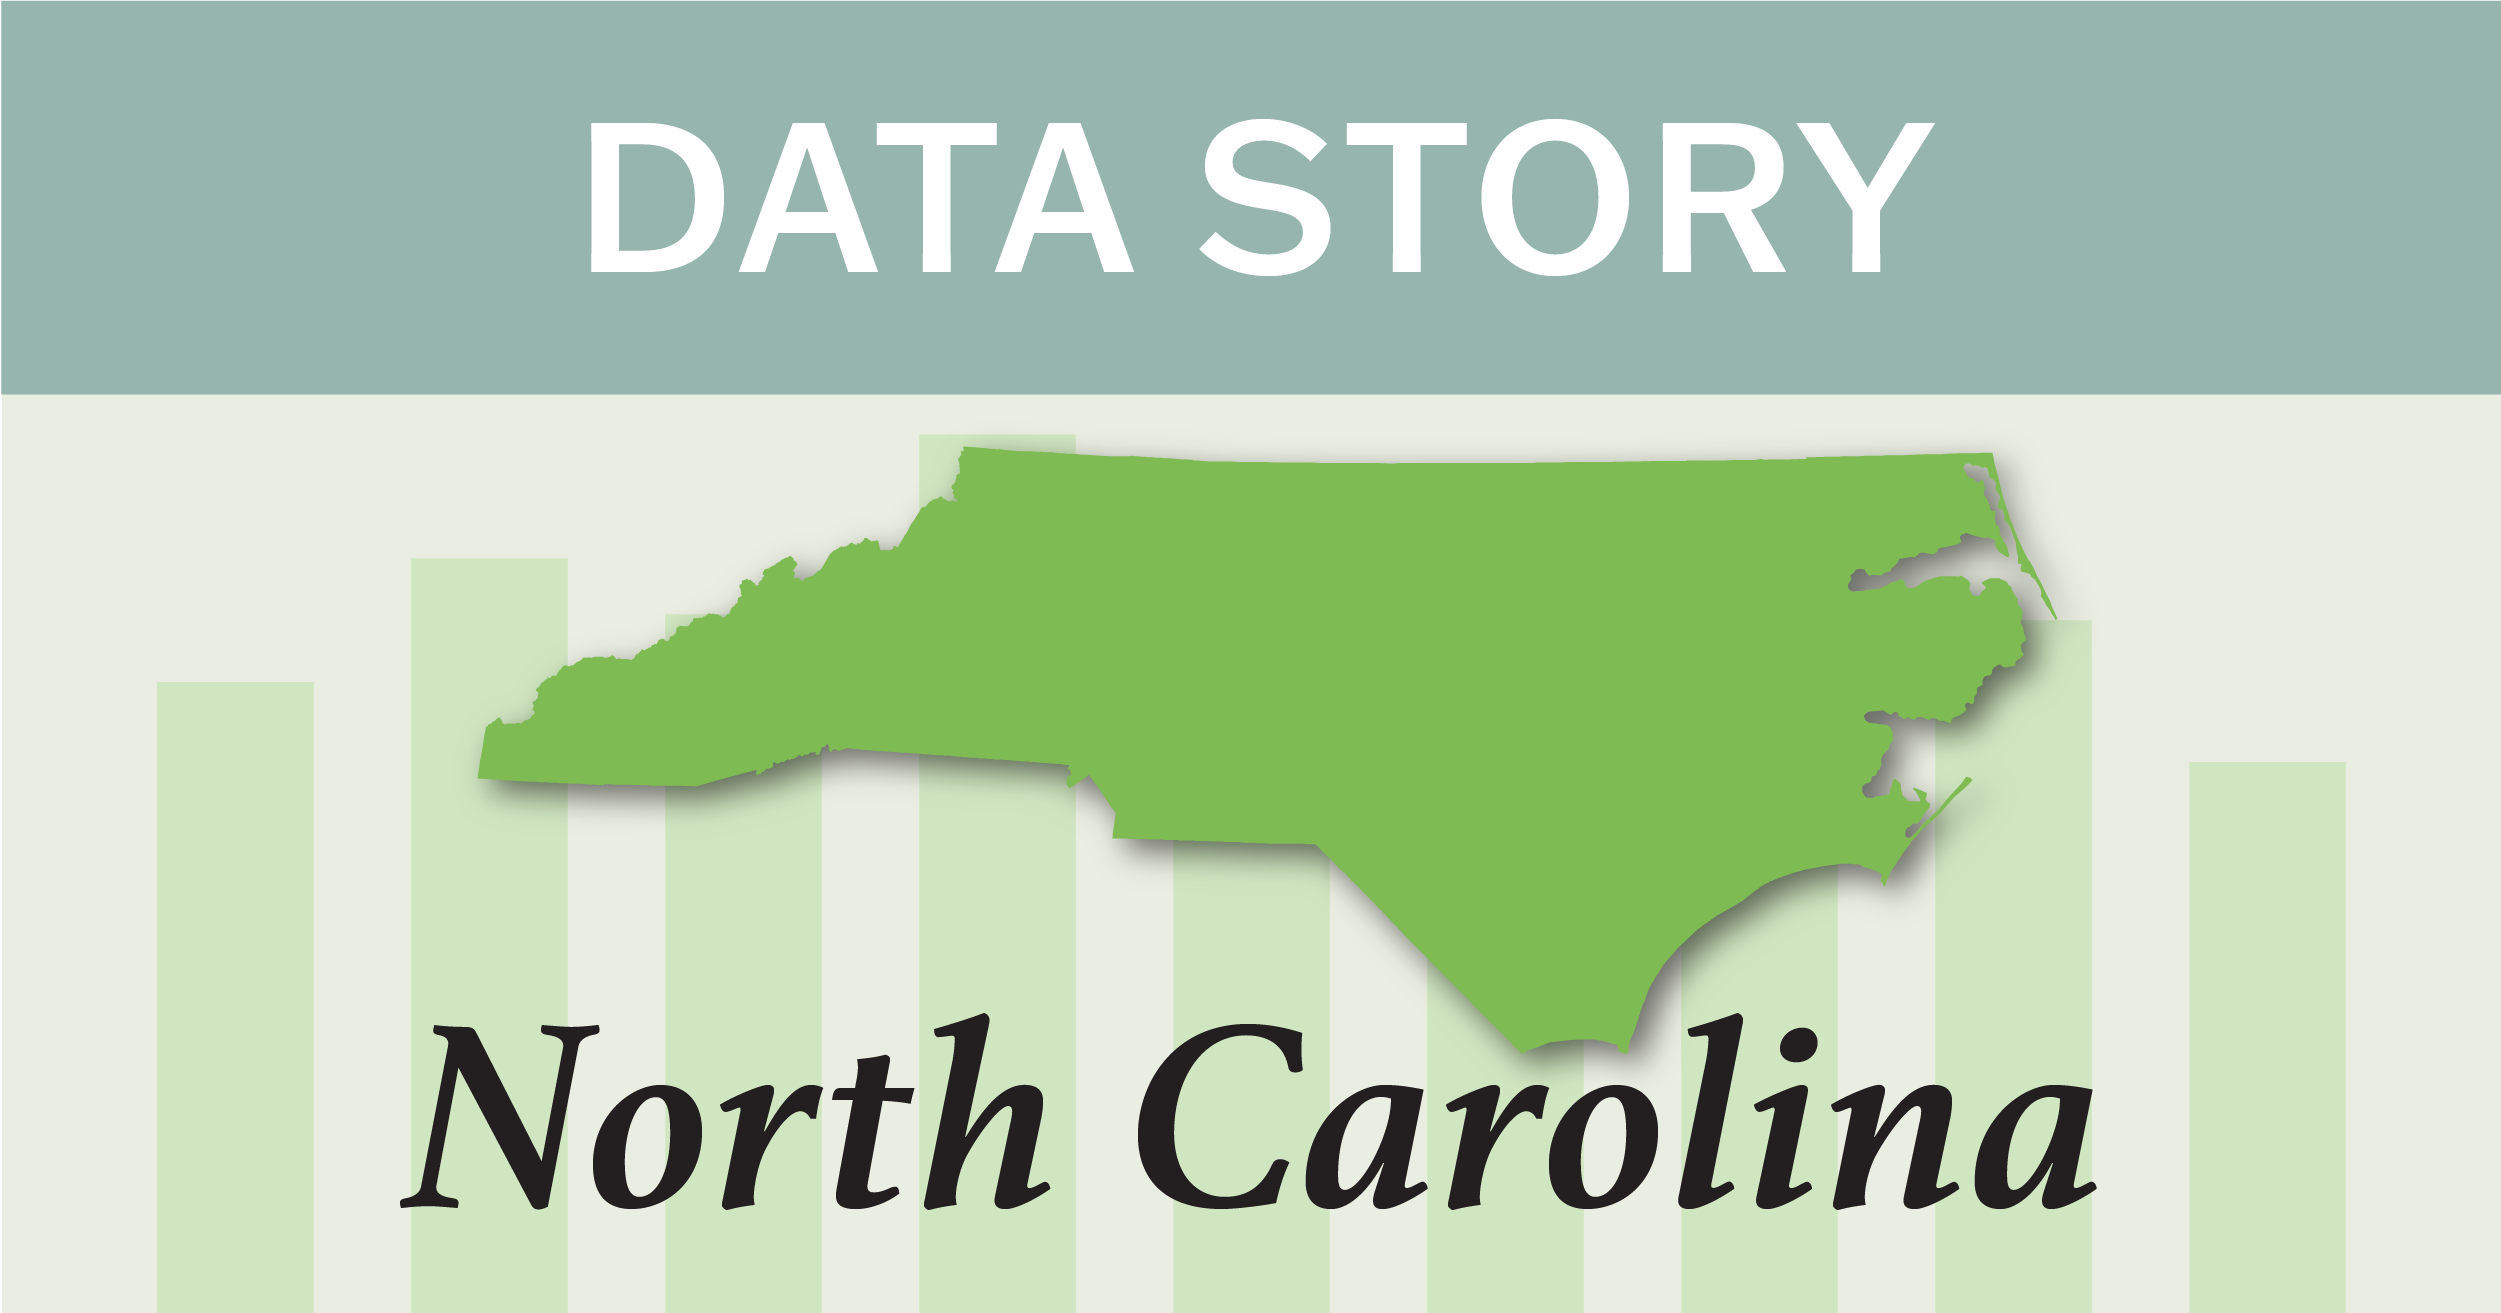 Outline of the state of North Carolina.